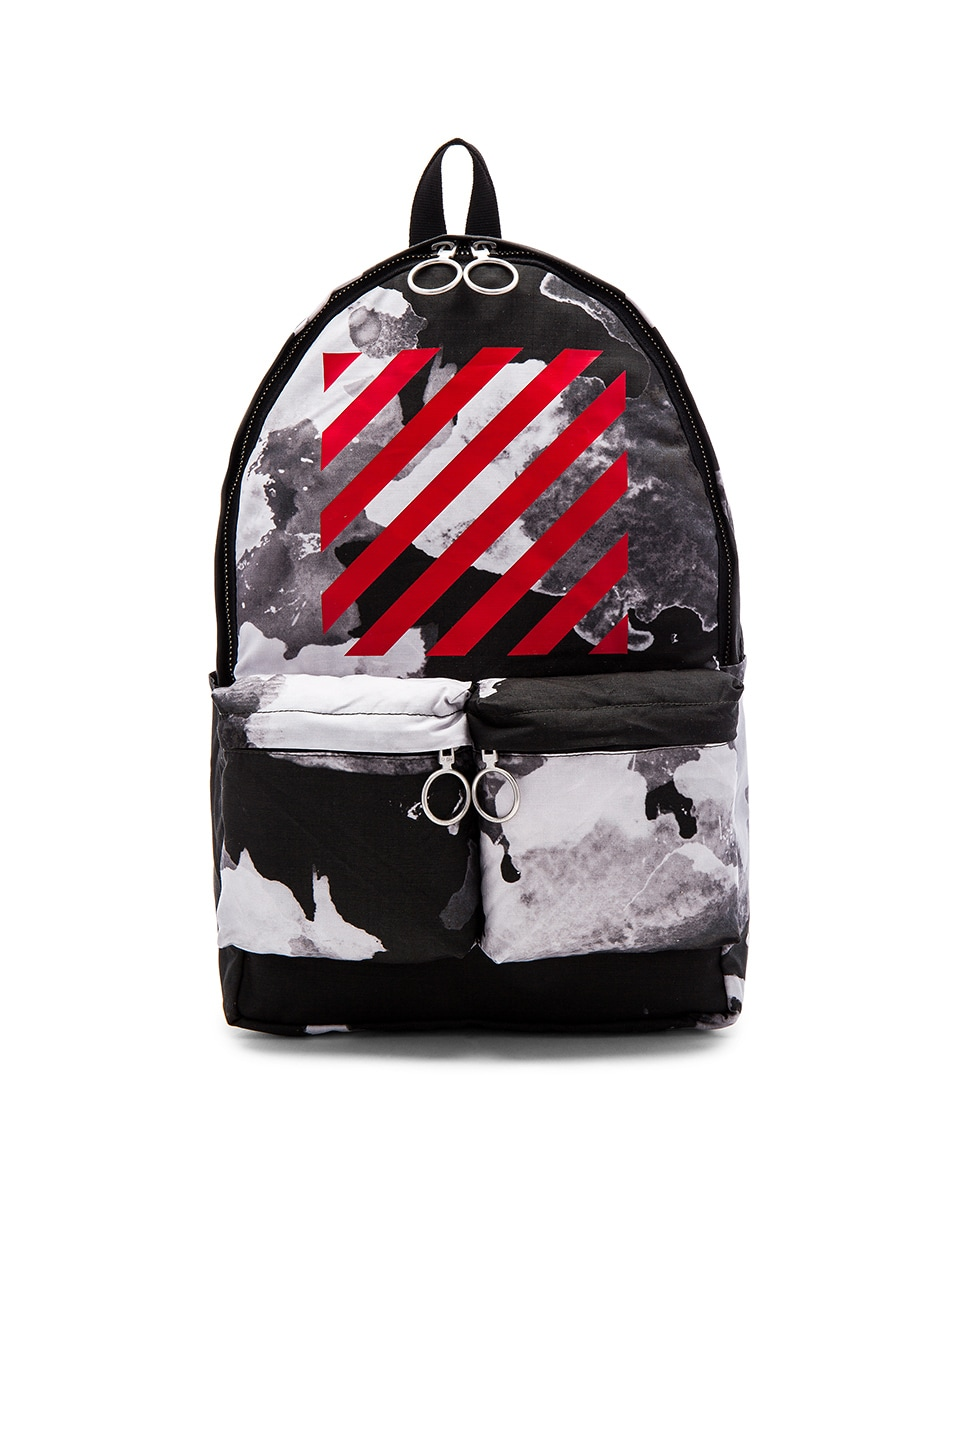 OFF-WHITE Liquid Spots Backpack in All Over Red